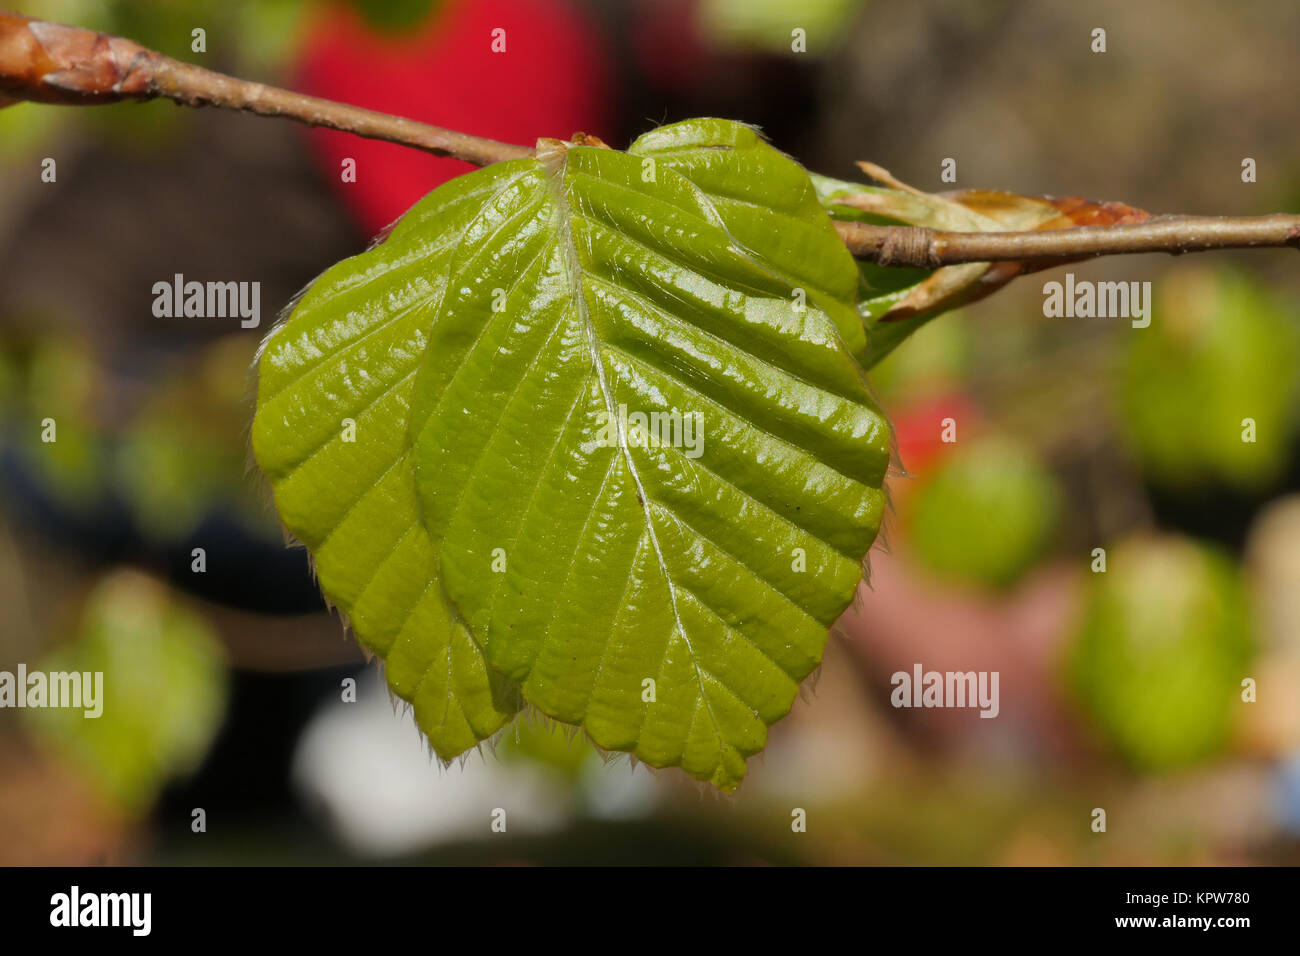 close-up on a tree green leaf - Stock Image